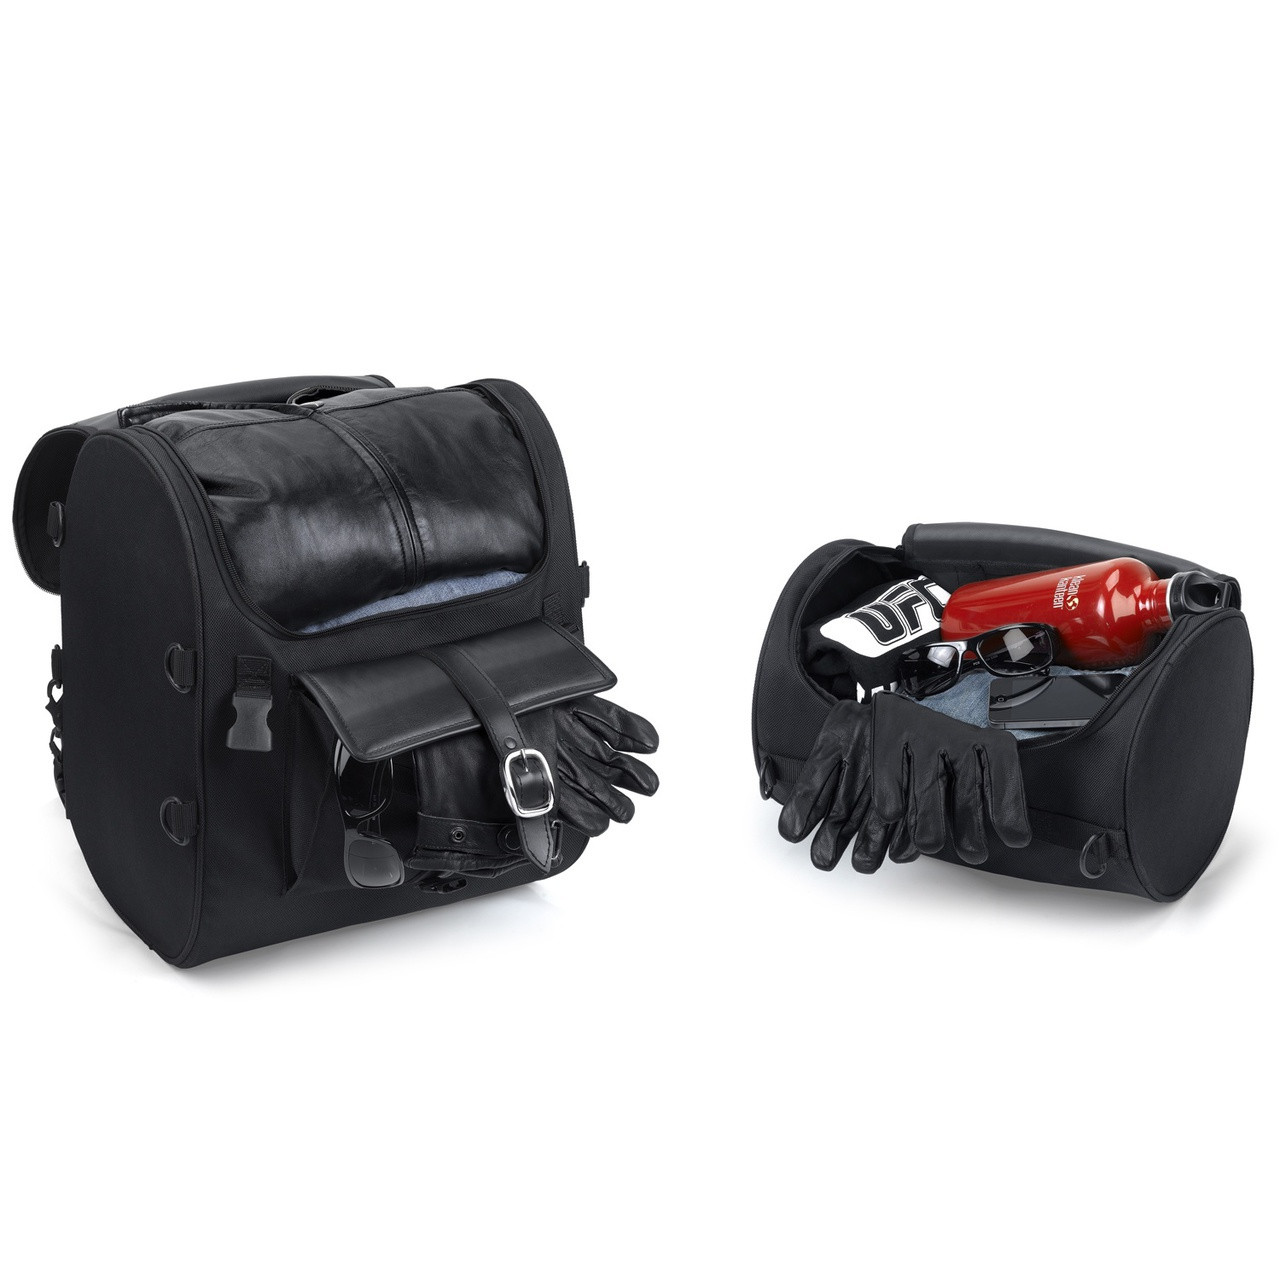 Economy Line Motorcycle Luggage Inside View with Accessories